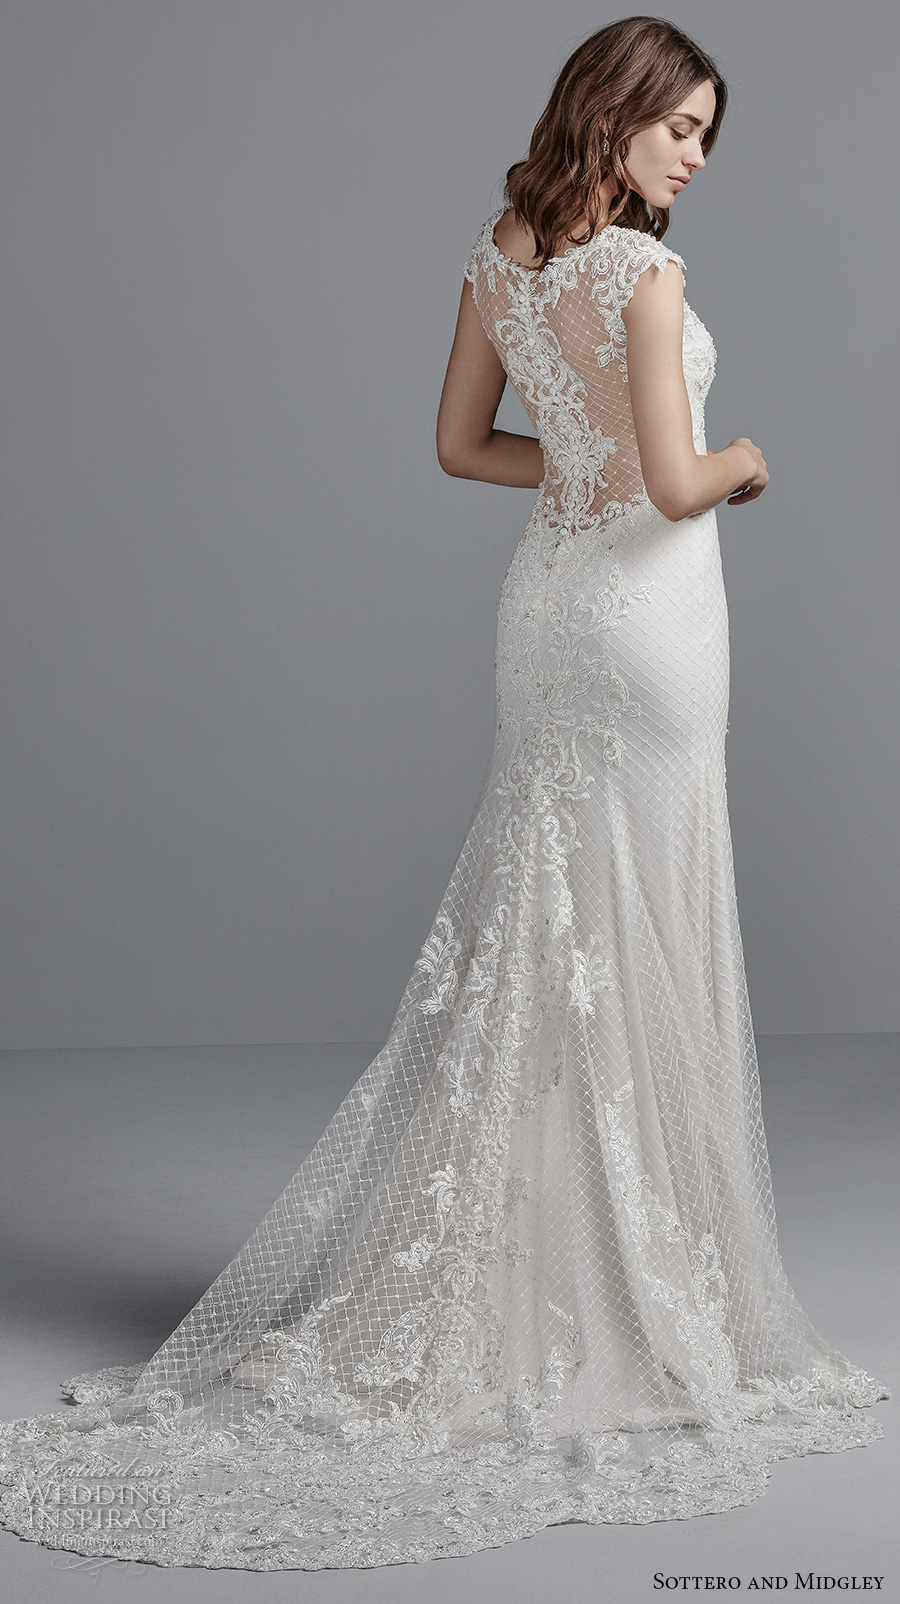 sottero midgley fall 2017 cap sleeves sweetheart neckline heavily embellished bodice elegant modified a line wedding dress illusion lace back short train (989) bv